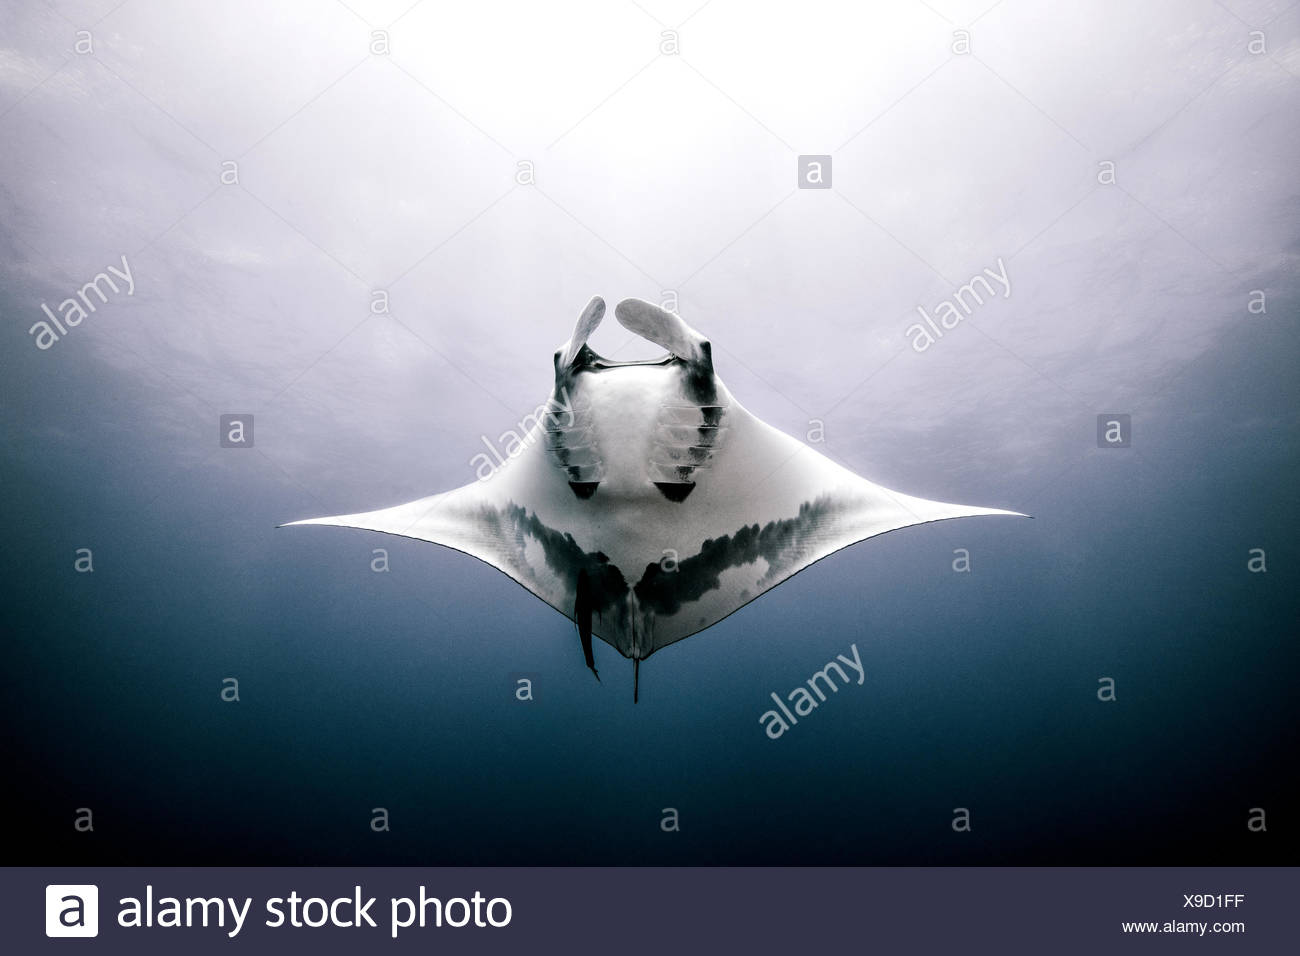 Giant Manta Ray, underwater view, Roca Partida, Mexico - Stock Image